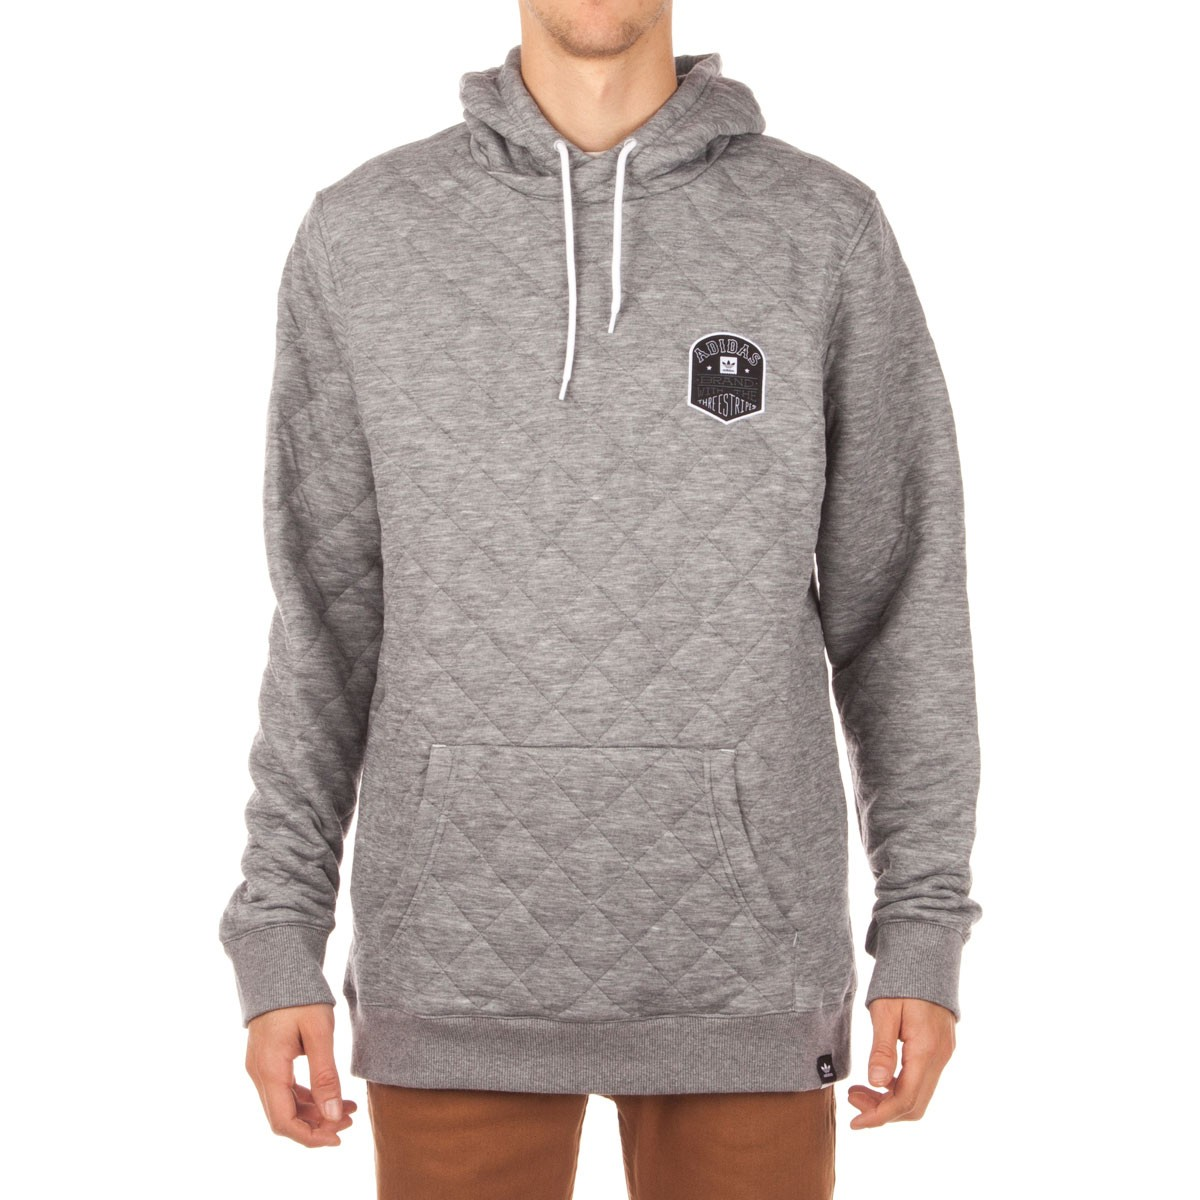 e961043a0 adidas-triple-lock-up-quilted-hoodie-heather-1.1506930158.jpg